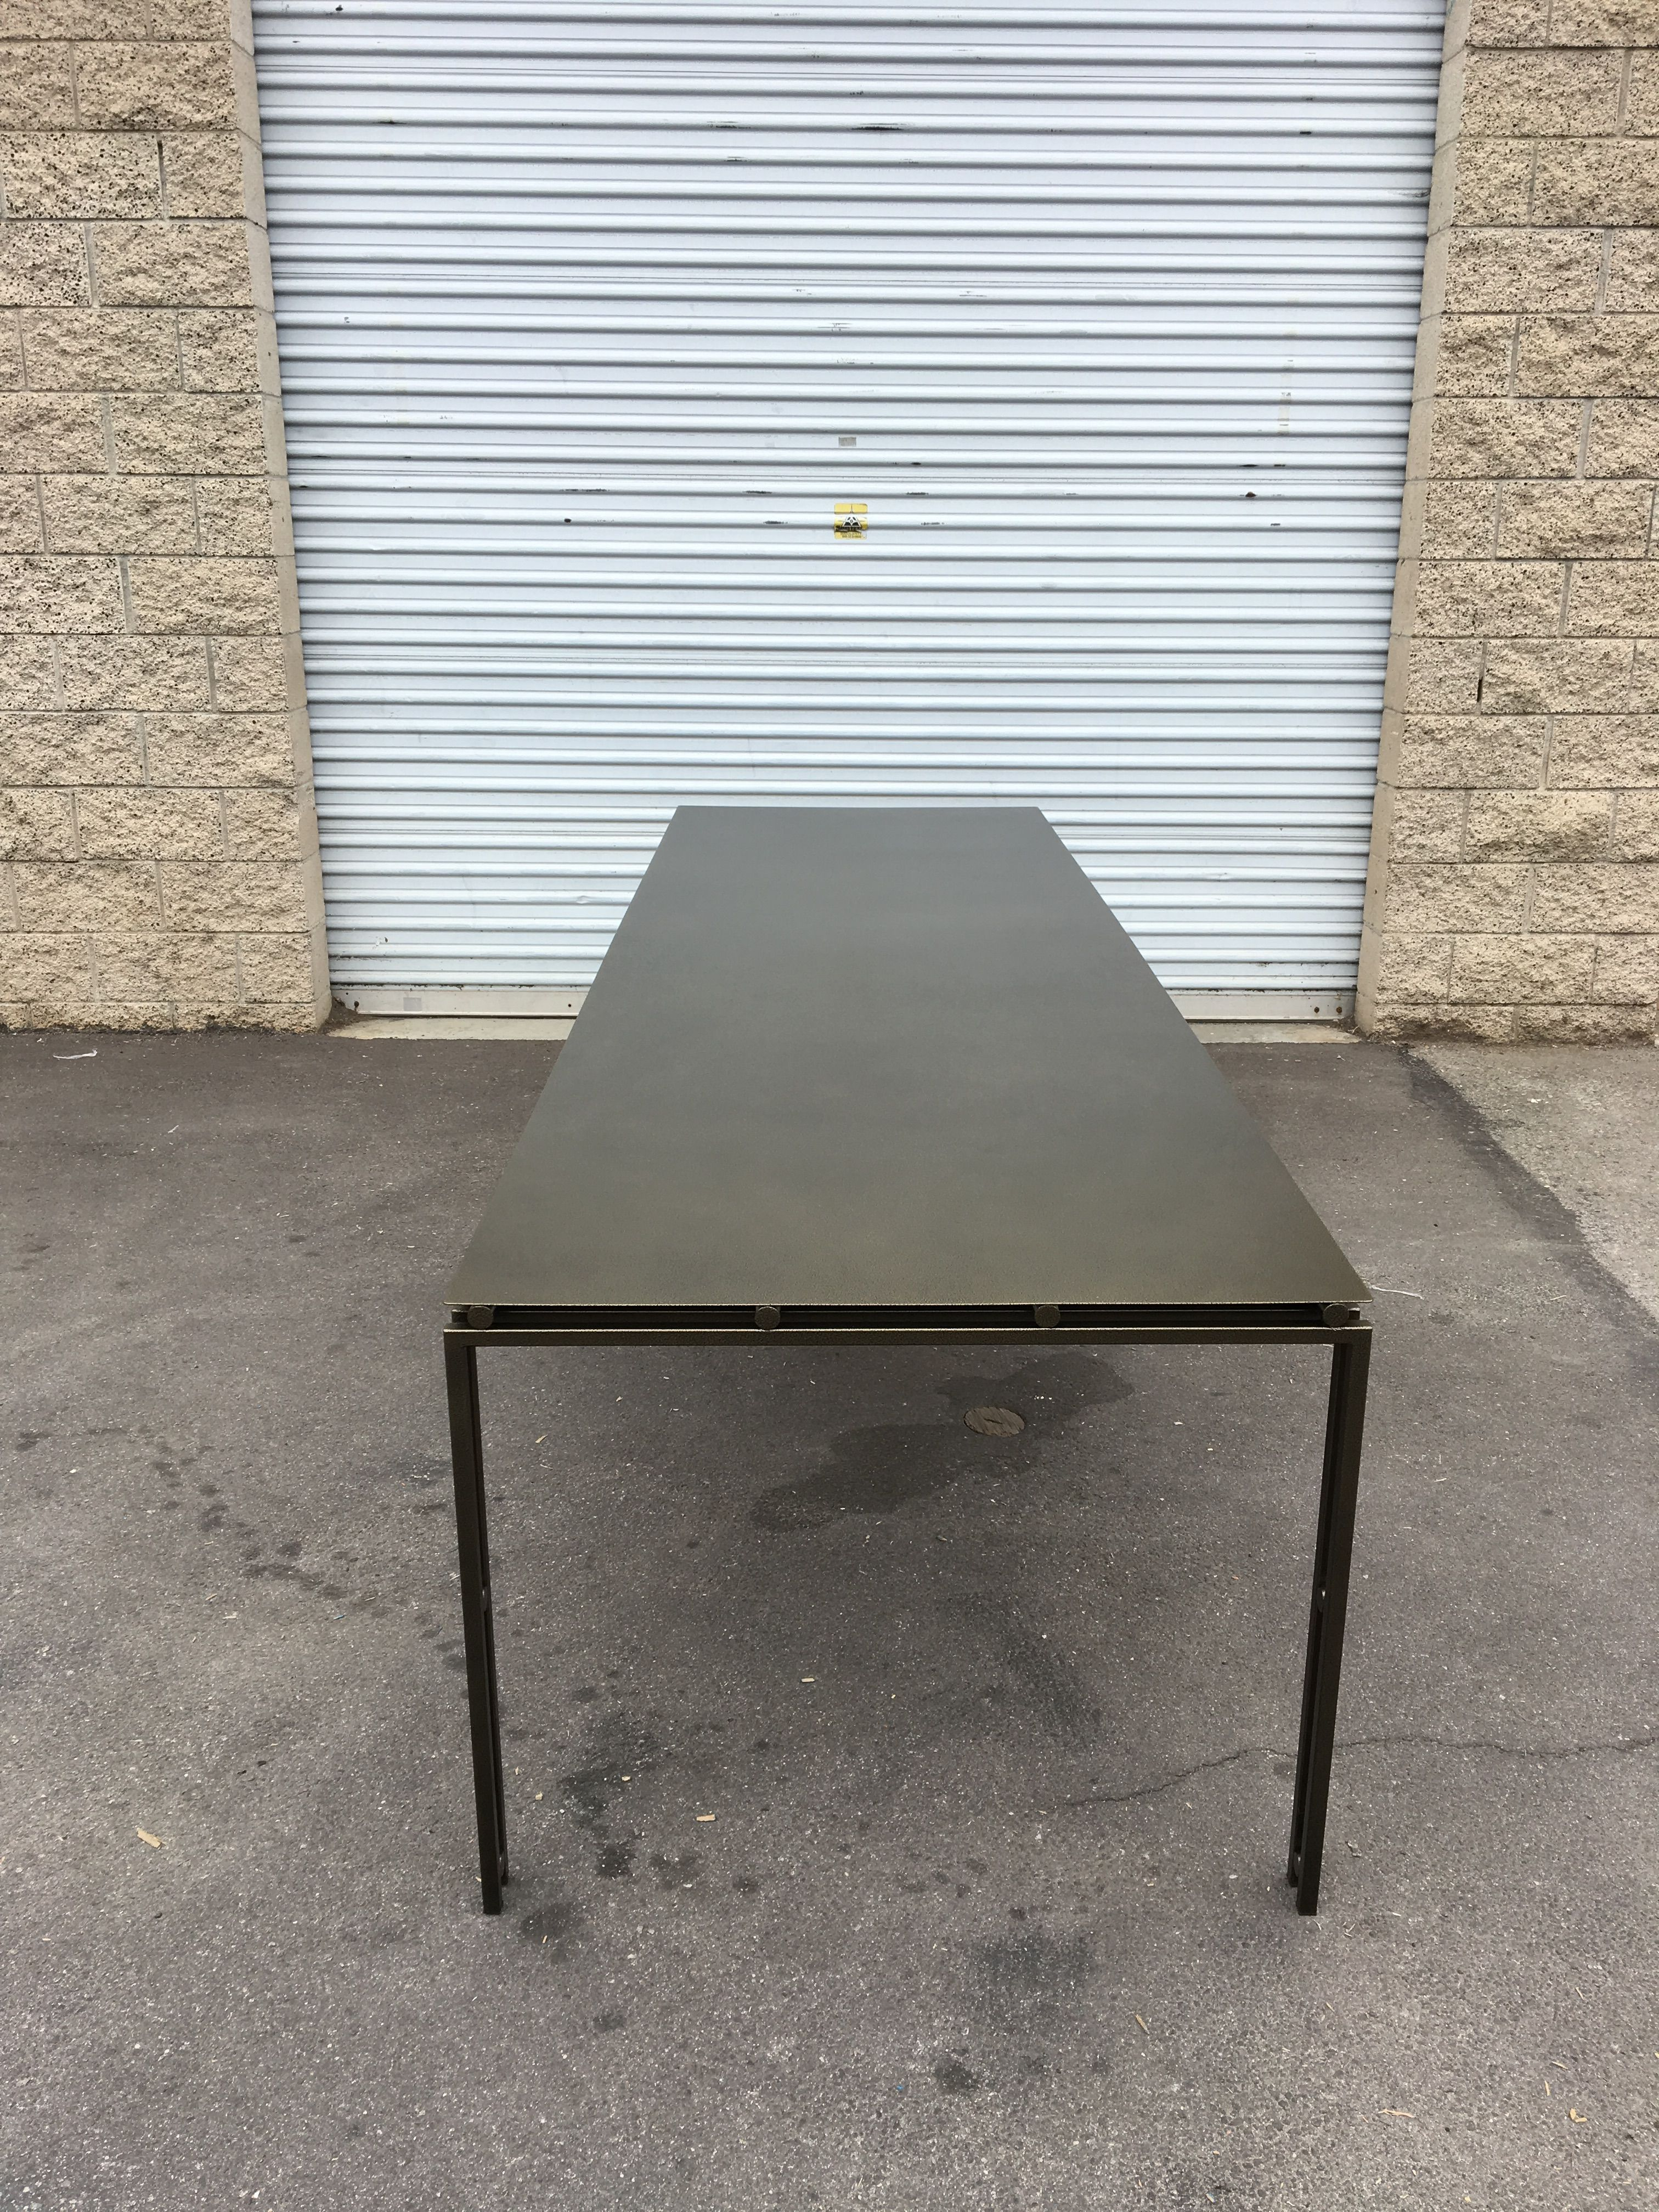 Suspension Metal Dining Table - Large Size product image 1